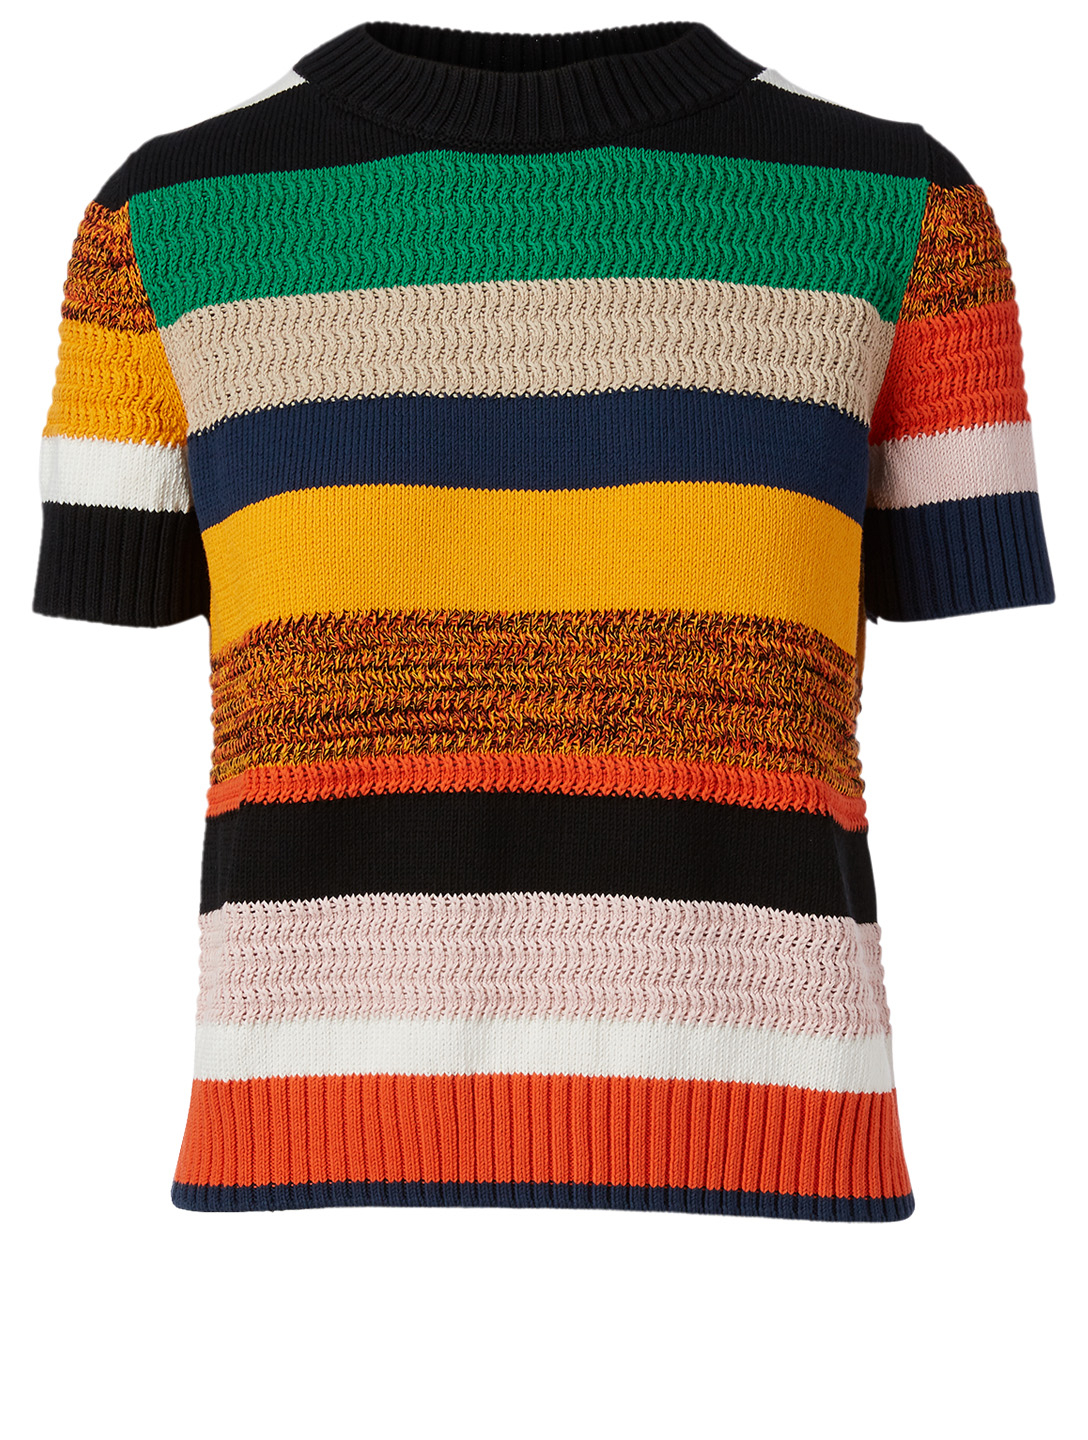 AKRIS PUNTO Cotton Short-Sleeve Sweater In Stripe Print Women's Multi